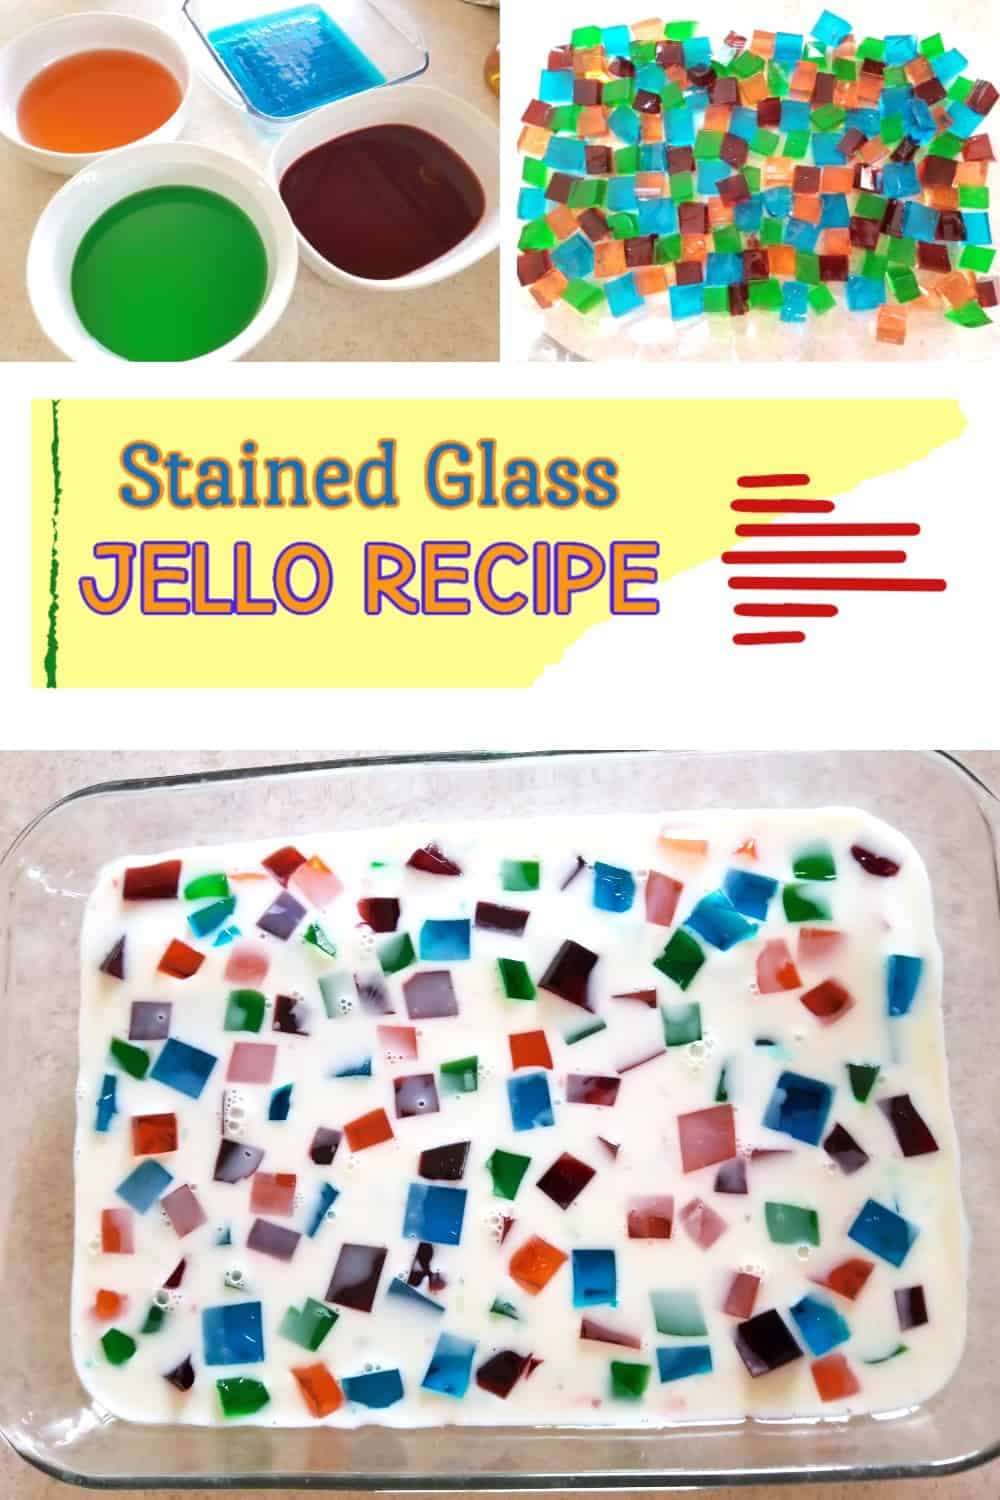 Stained Glass Jello Recipe - Unique Holiday Dessert for Your Dinner Table